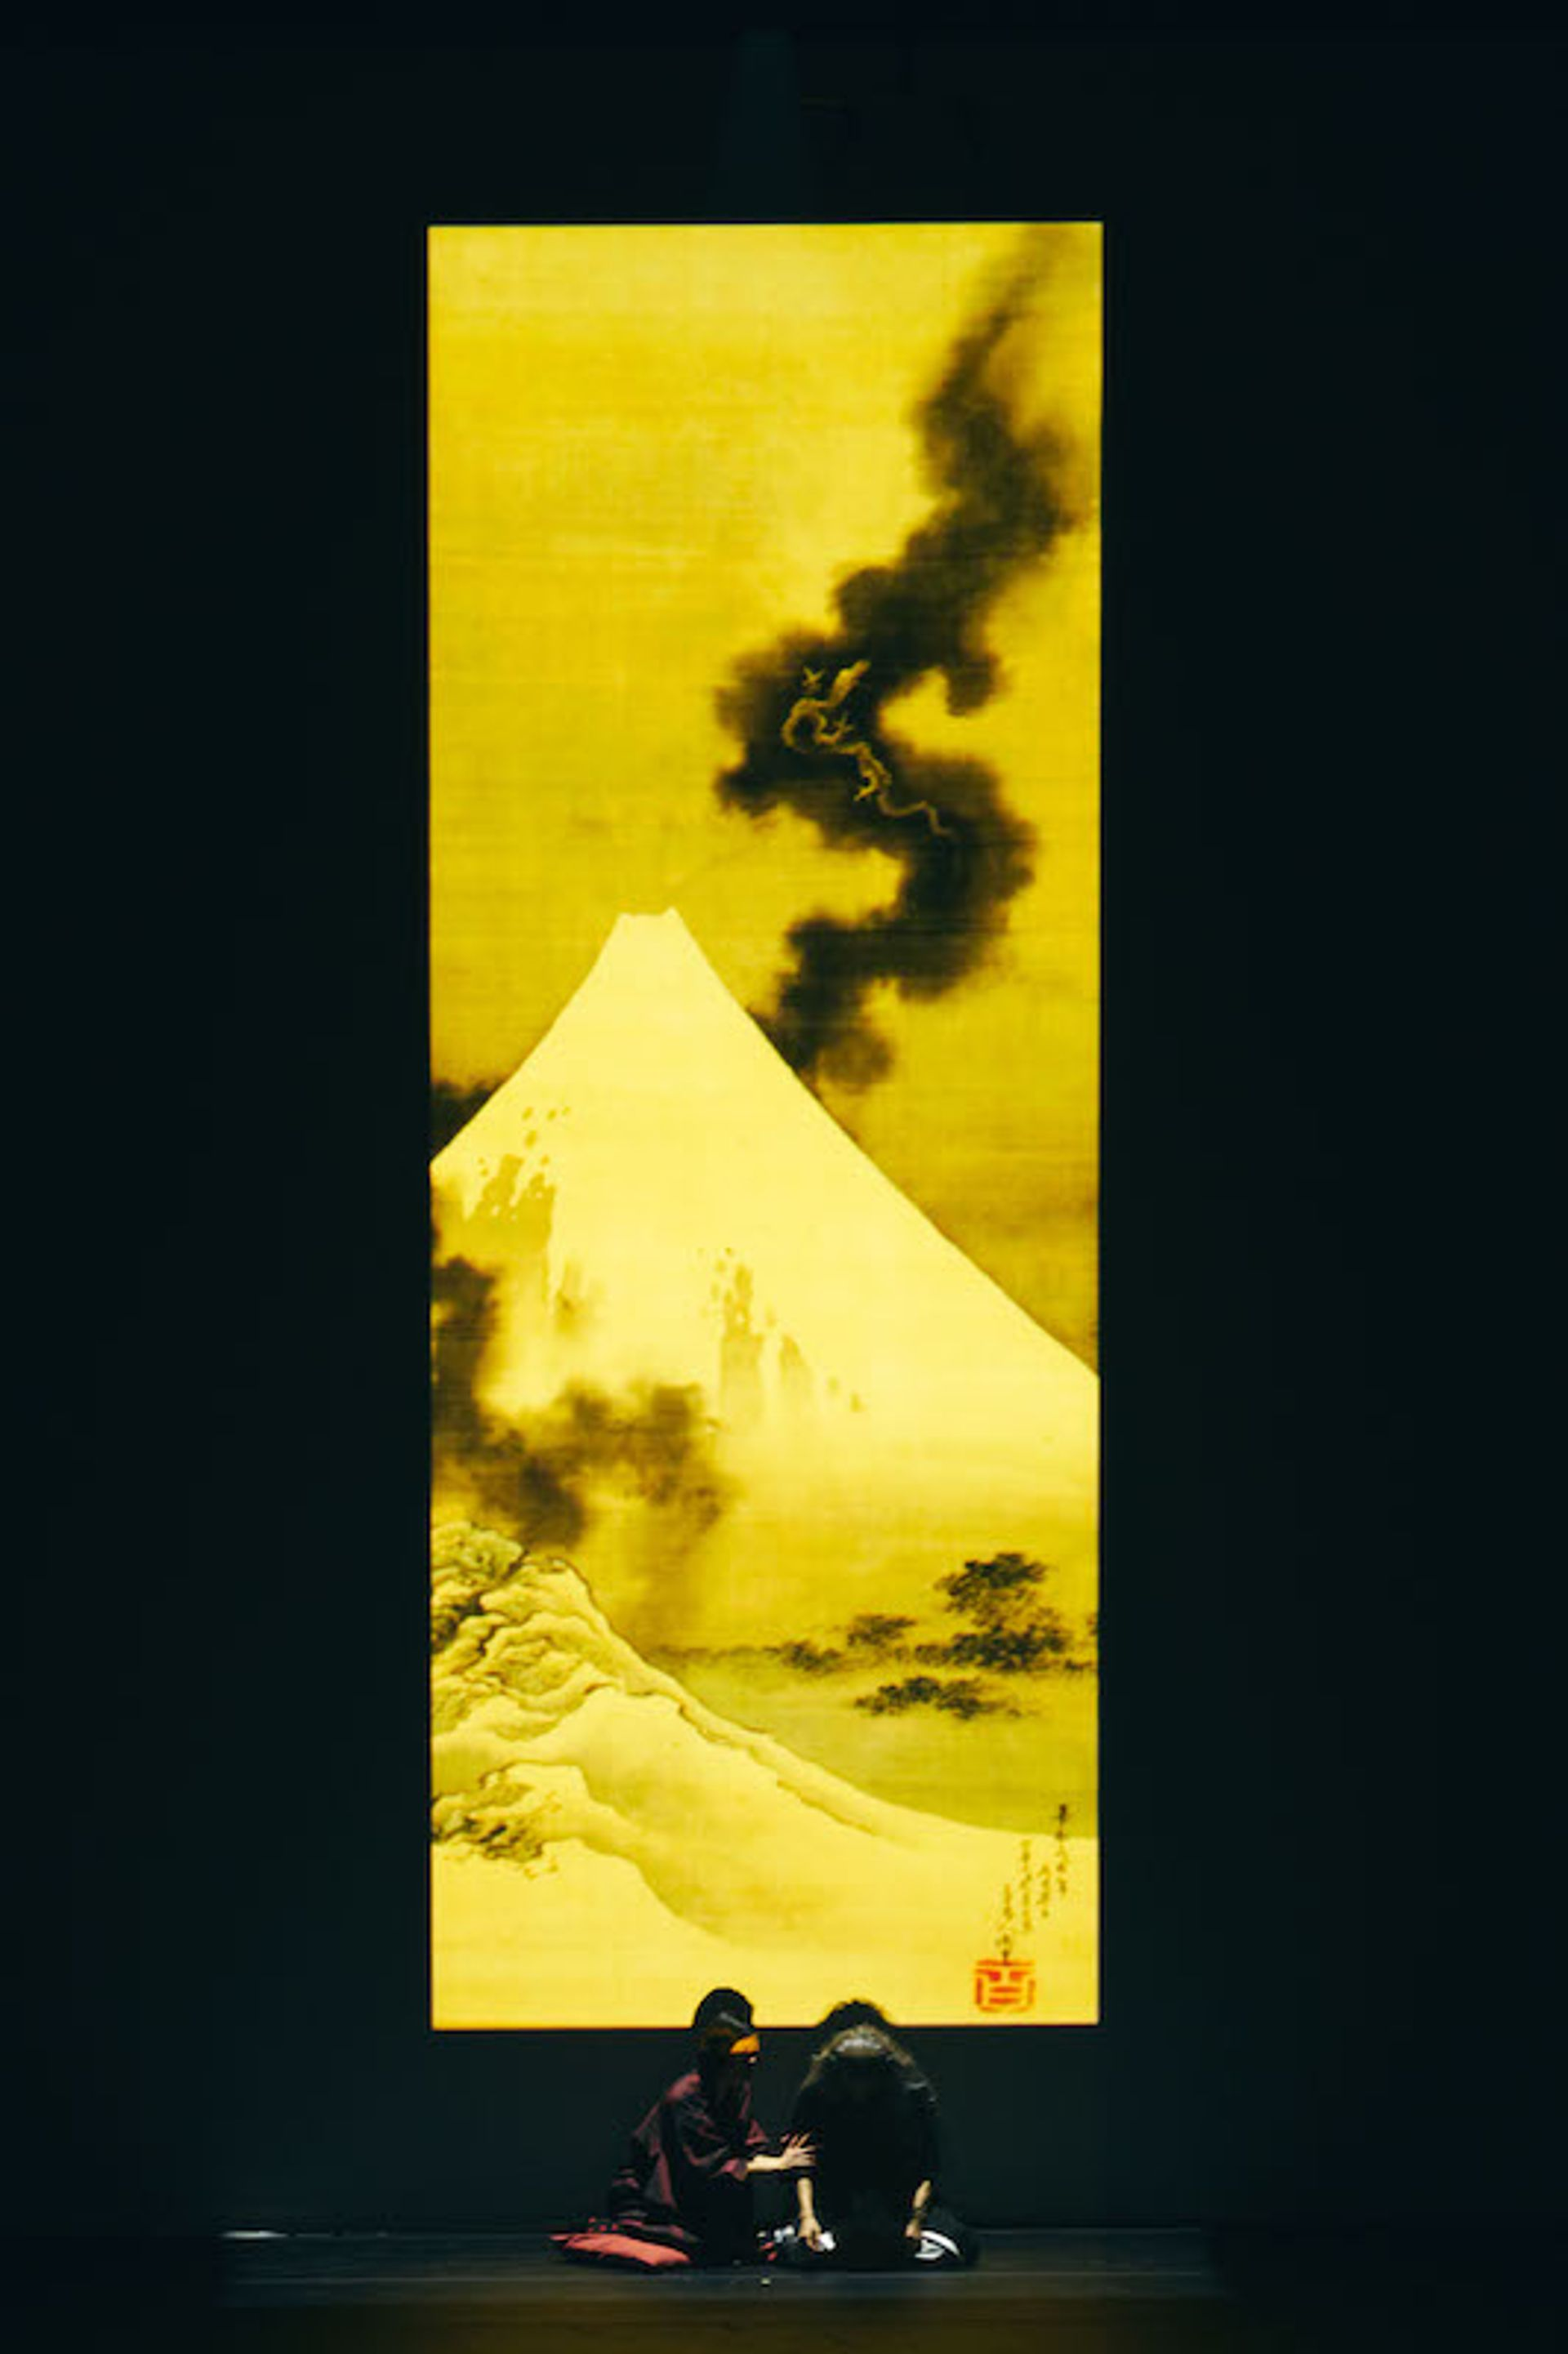 A scene from the Life of Hokusai courtesy organisers